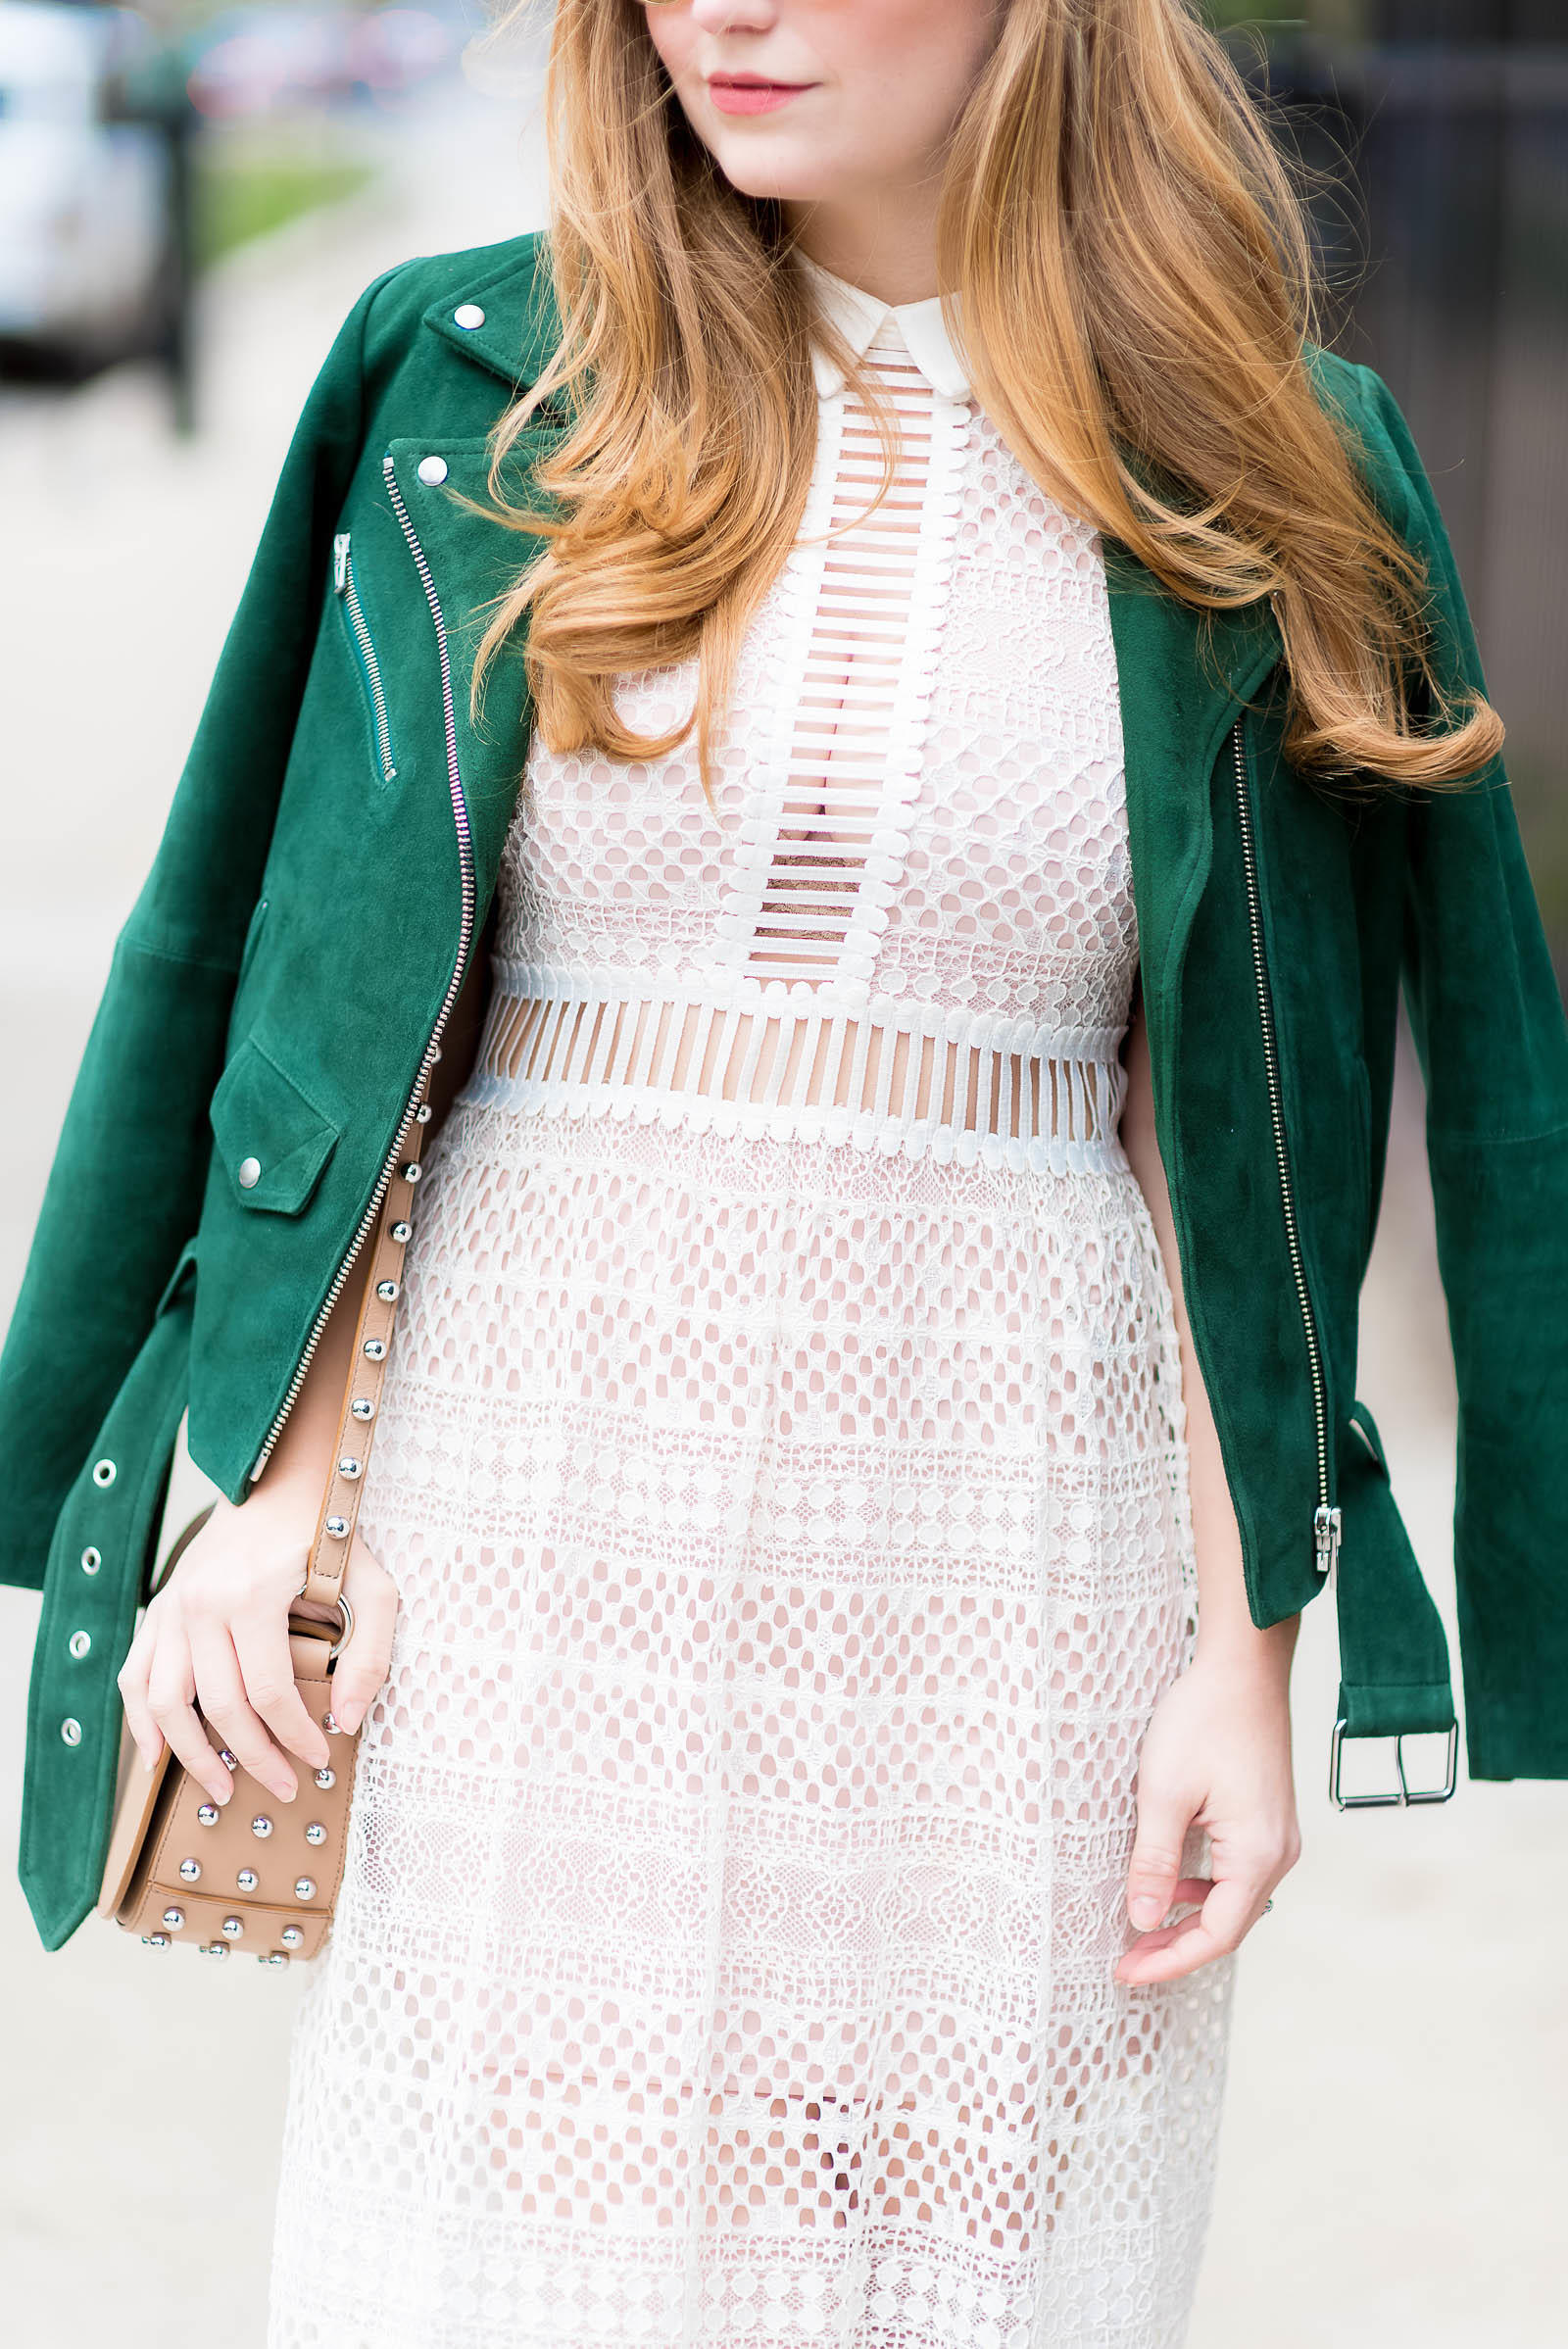 Green Suede Moto Jacket Lace Dress Stud Bag